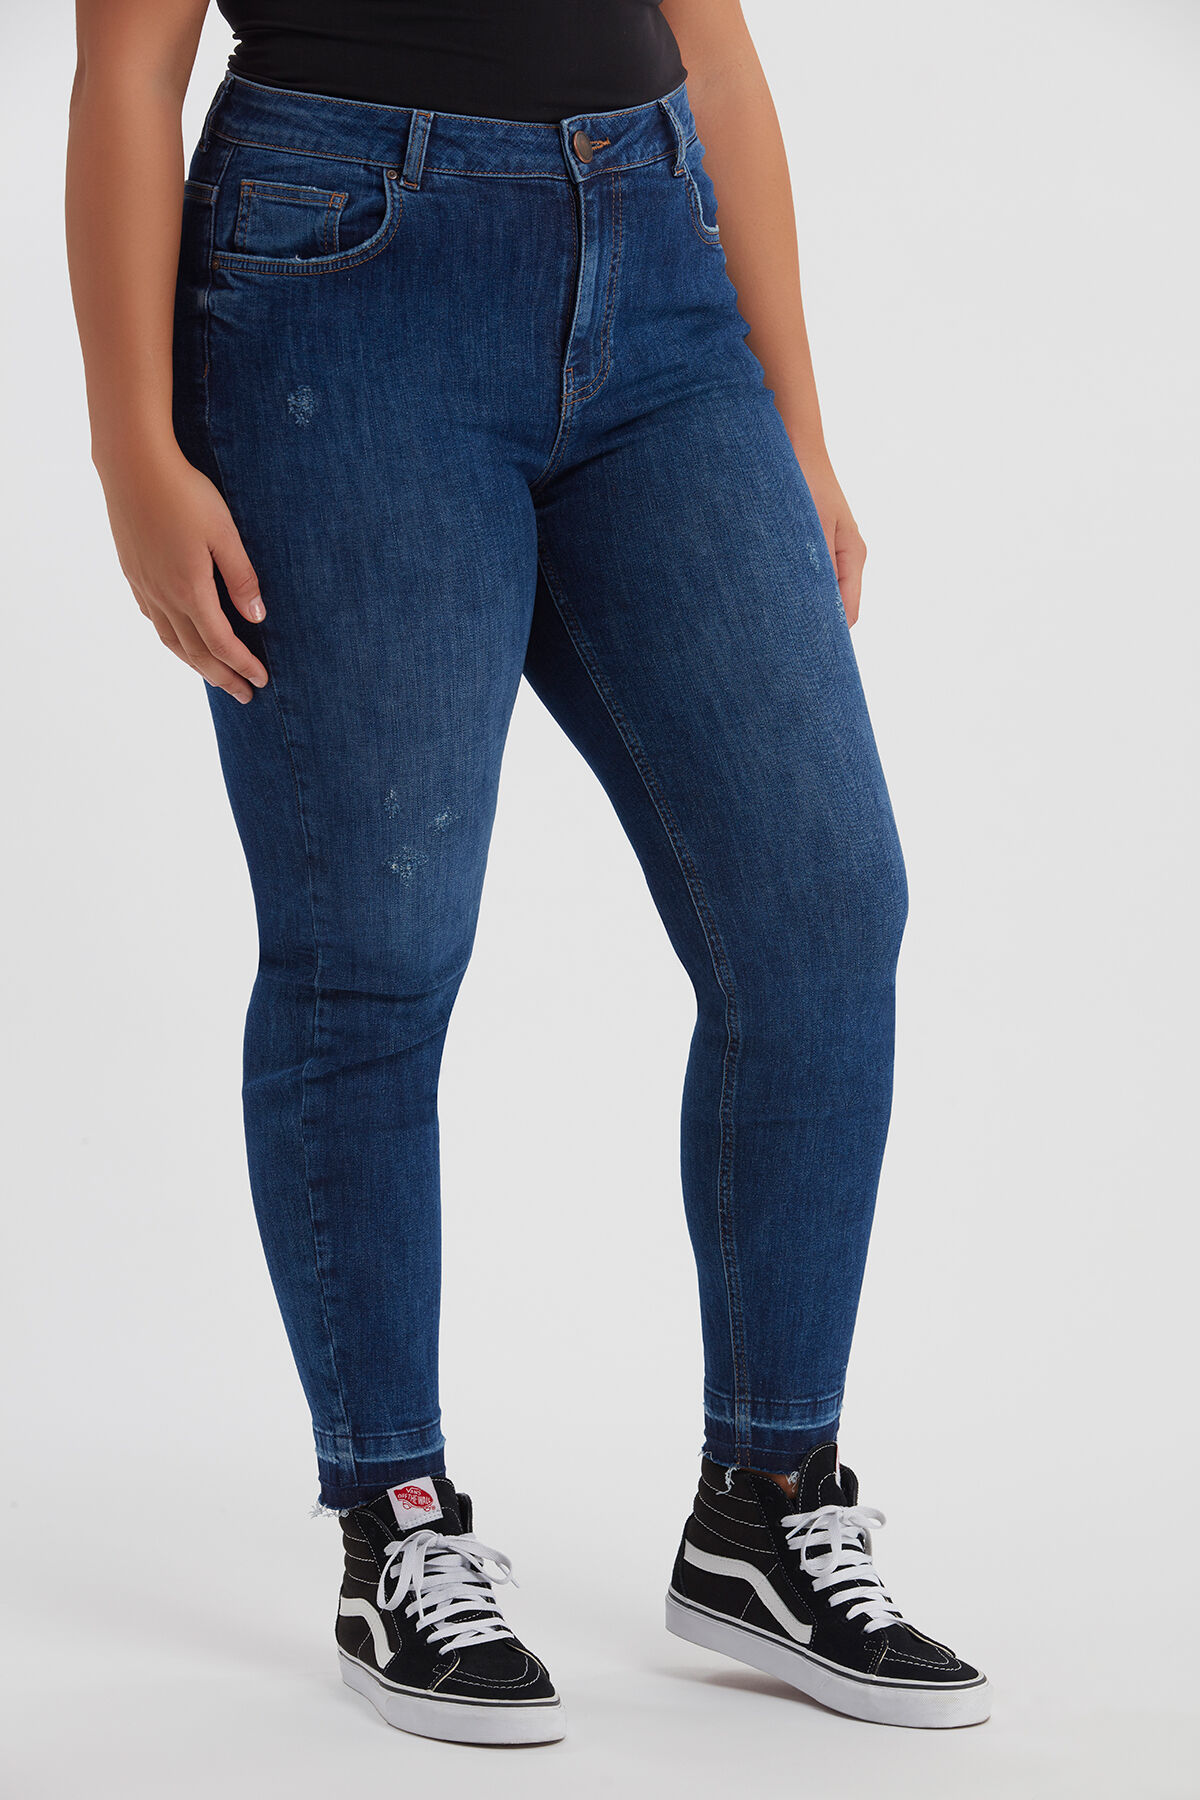 Jeans 54 Grande Taille Tailles Au FemmeMode Ms 40 b67gyIYvf